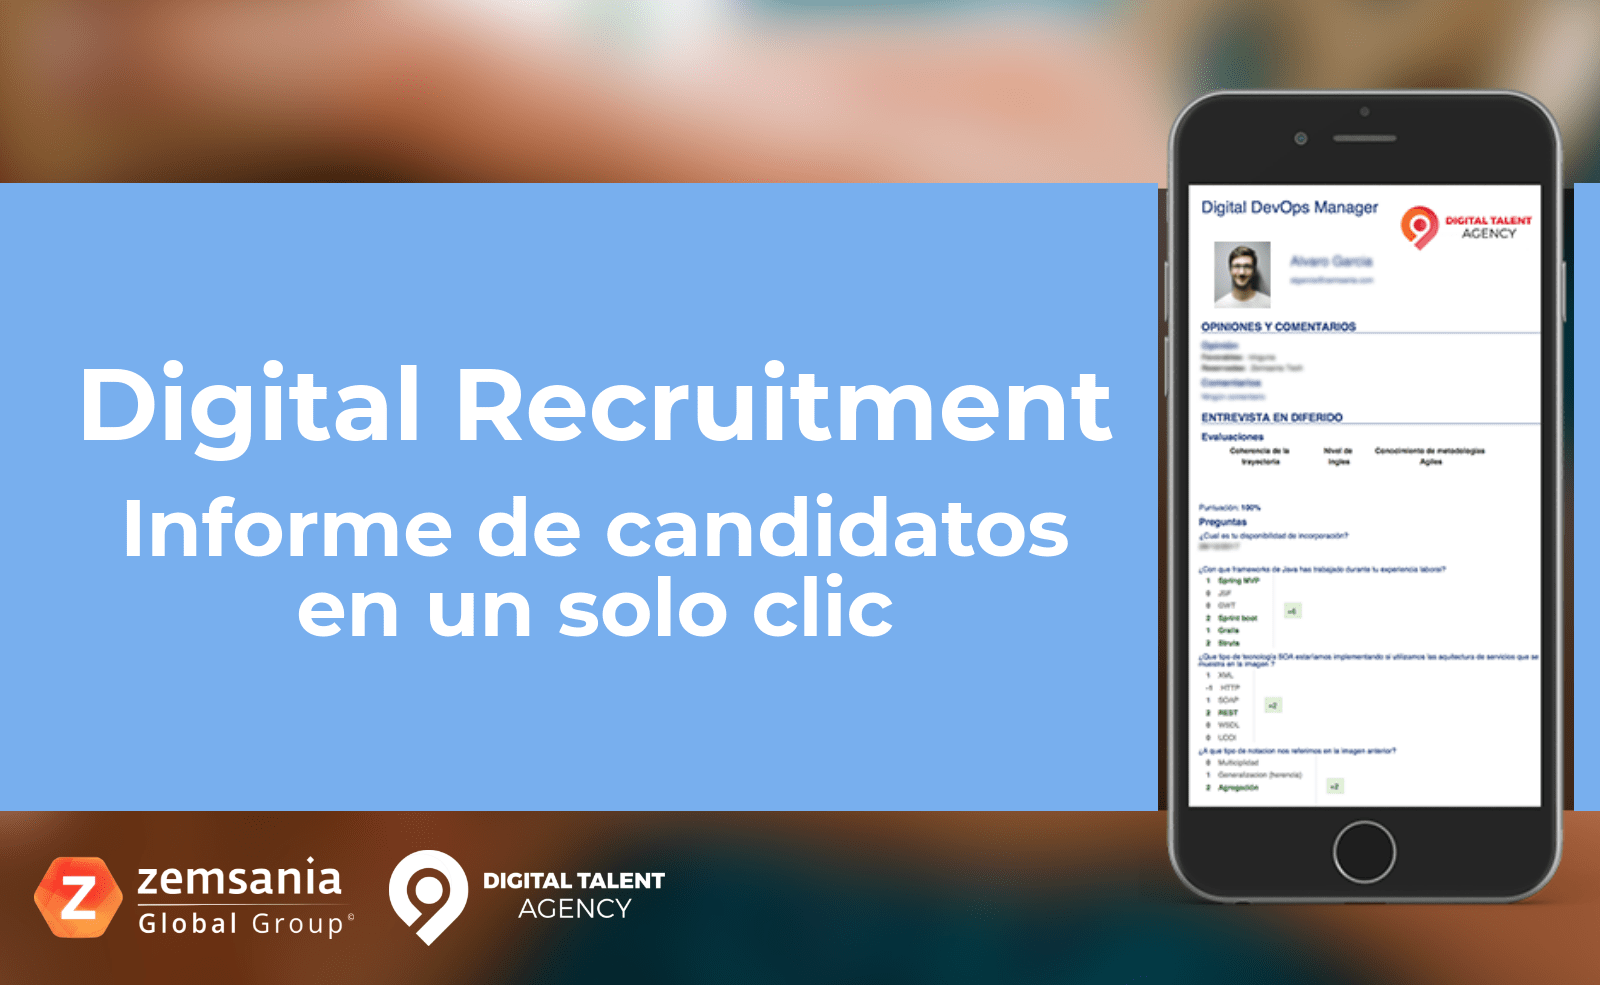 Digital Recruitment informe de candidatos